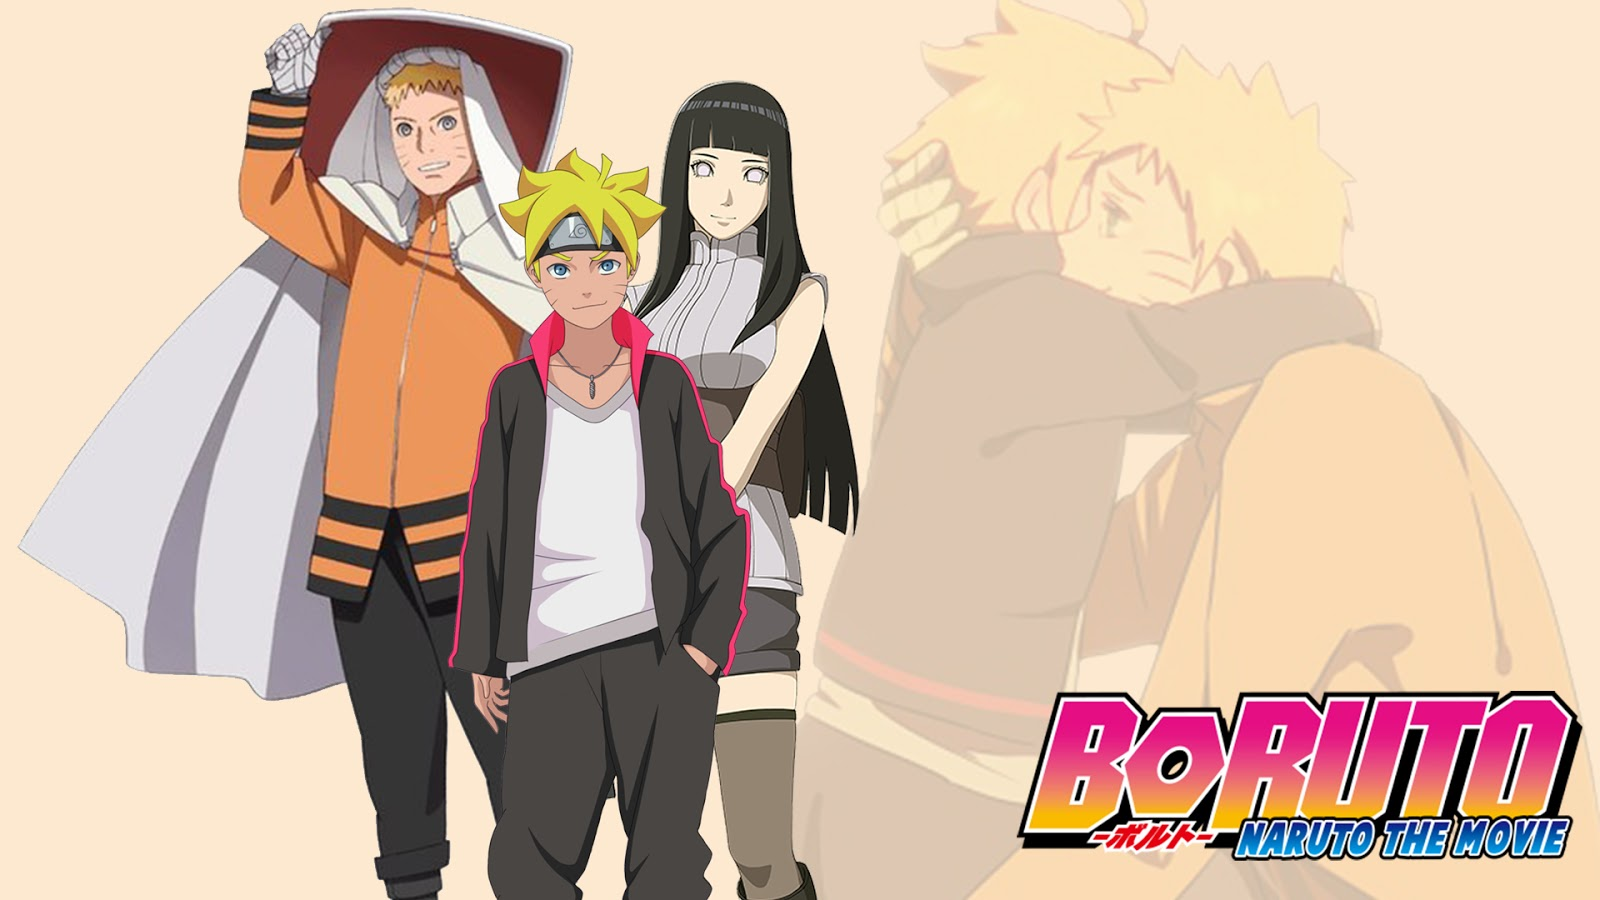 Download Wallpaper Boruto Gratis Update 2018  Terbaru9Info